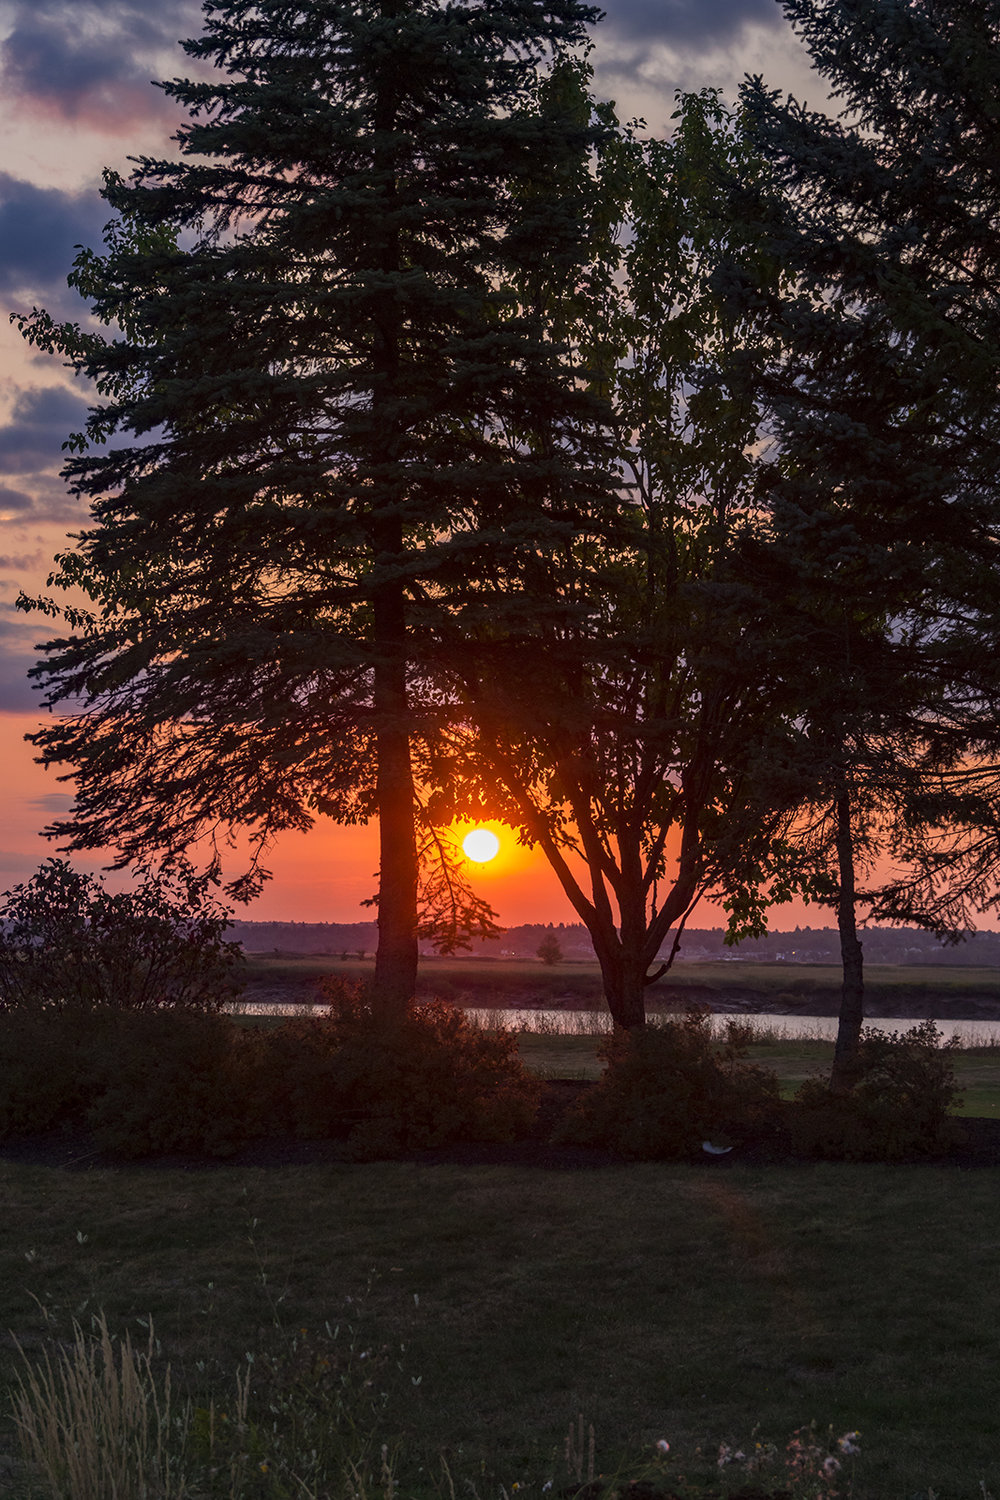 Moncton Sunrise - Canon 7D mk II, Canon 18-135 @ 48mm, 1/320 sec, f/8 and ISO 400